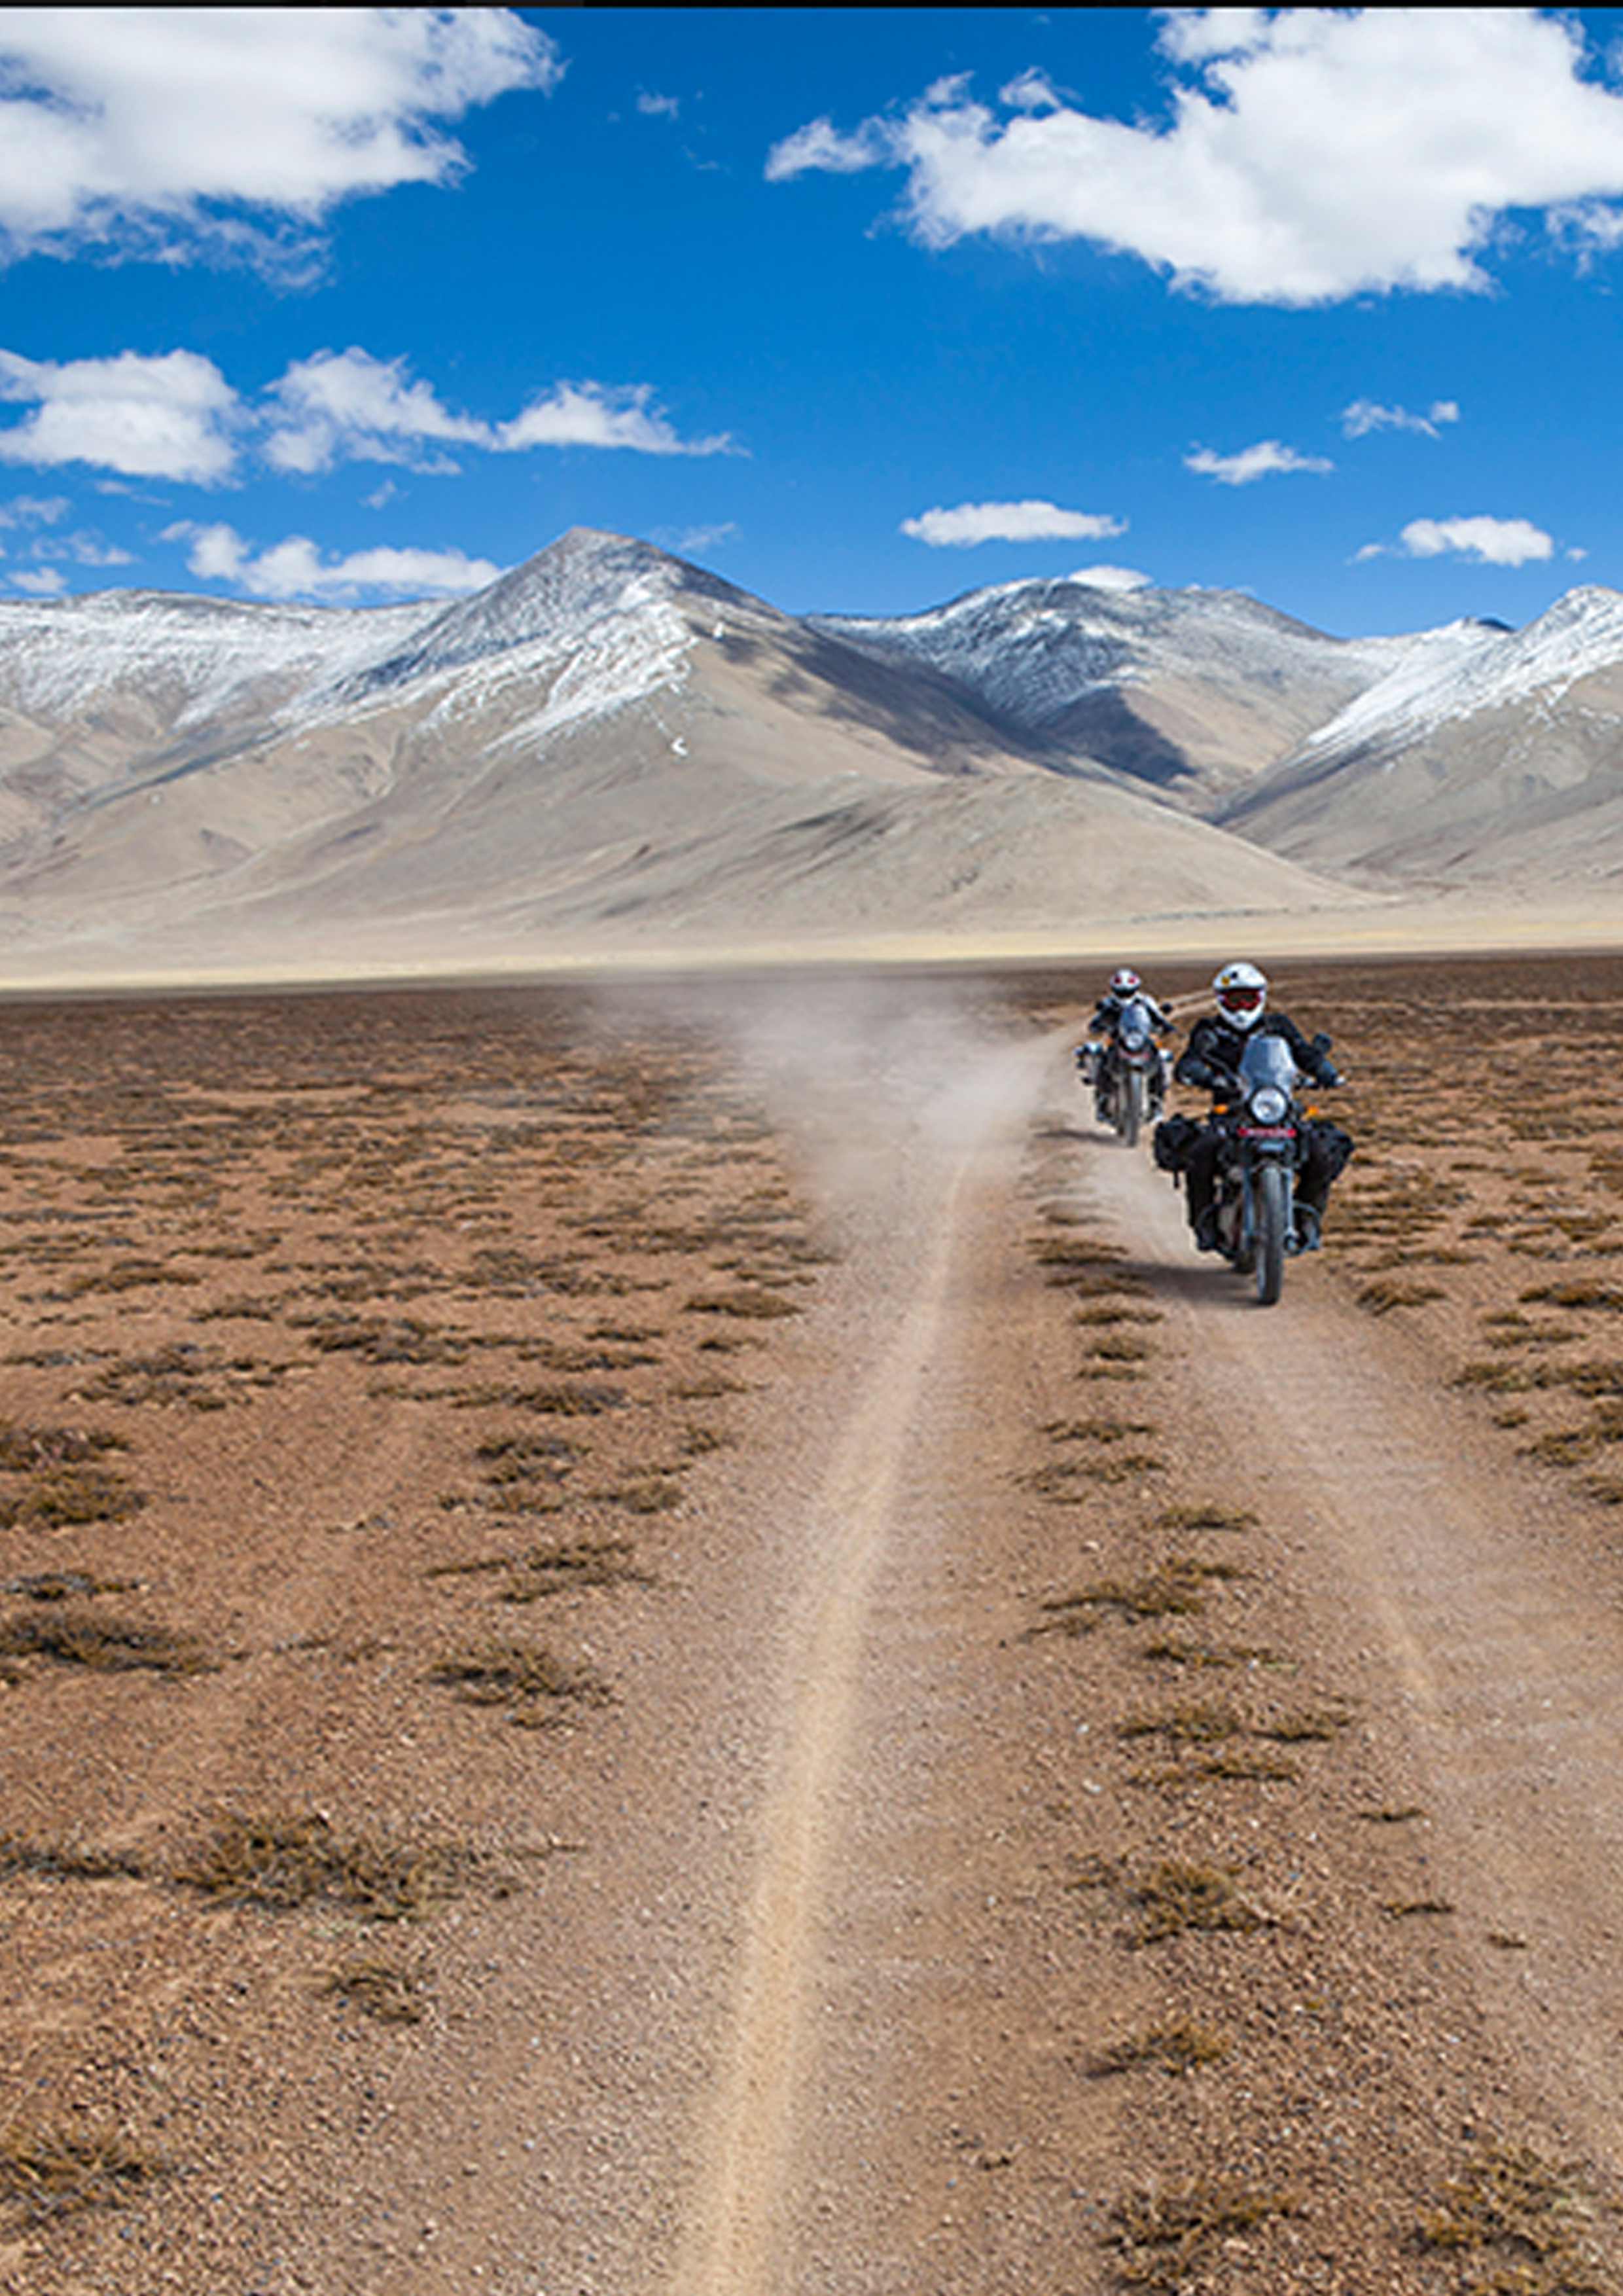 Off-riding on the way to Leh